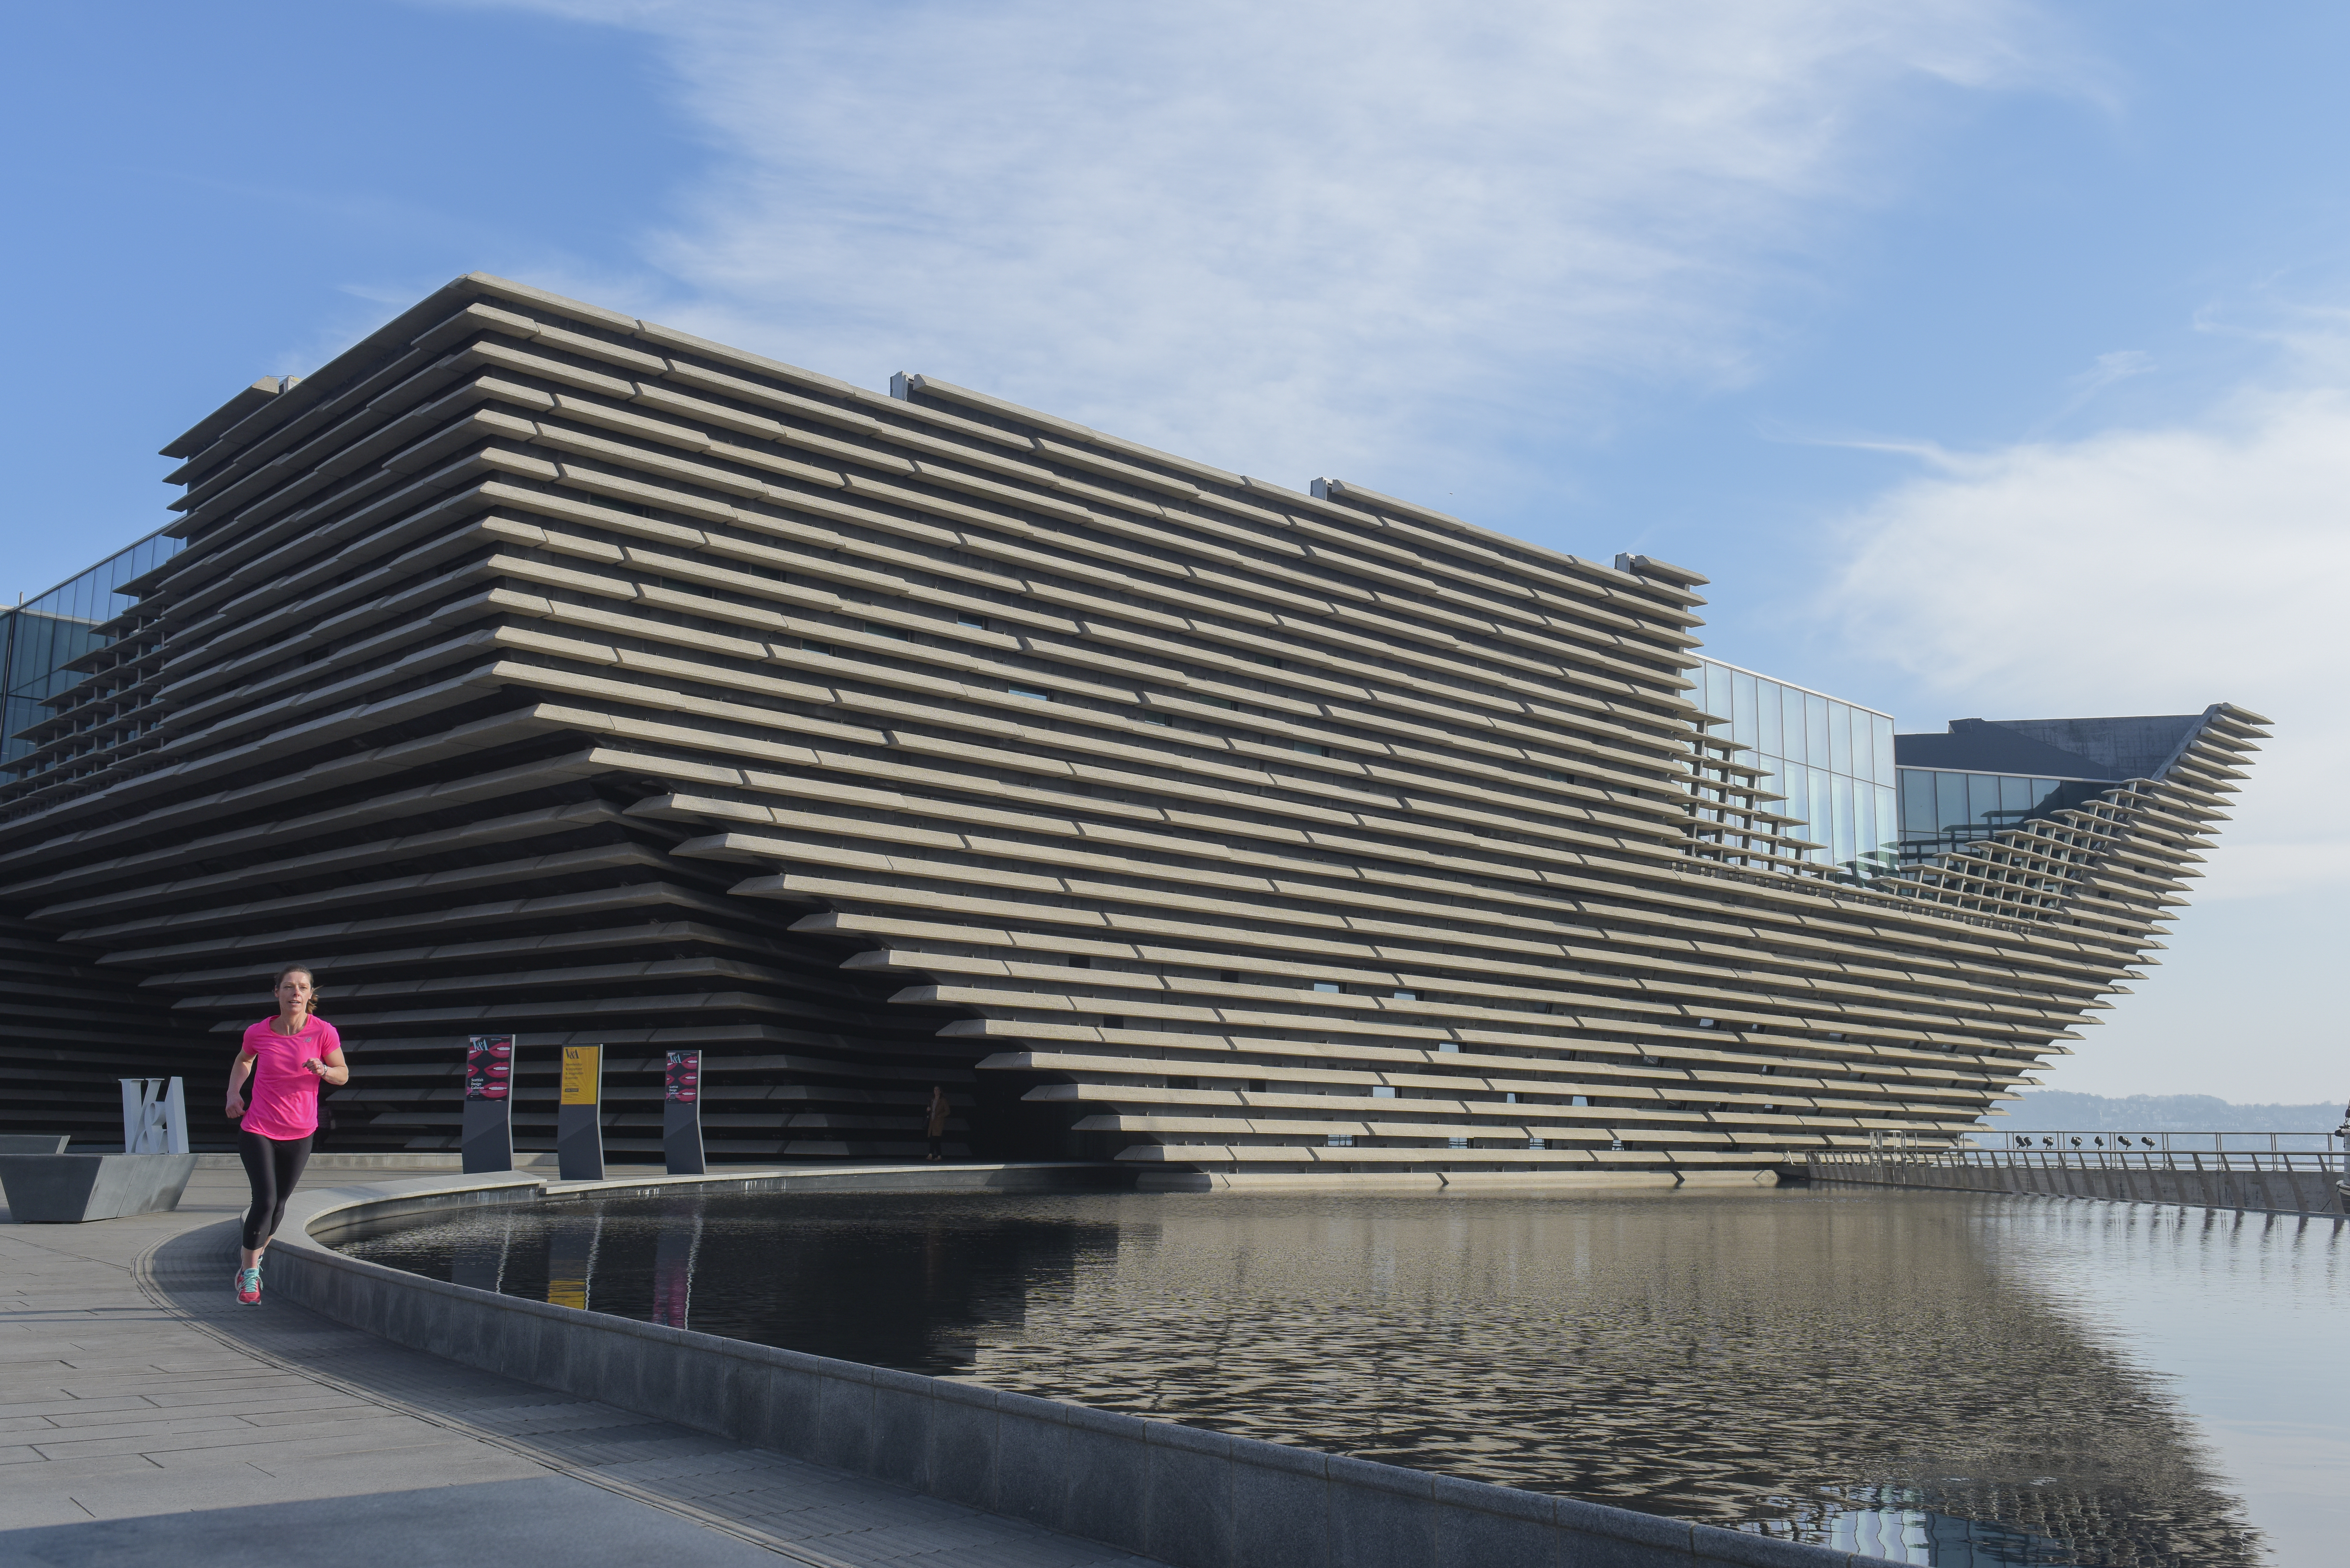 Dundee Soup's event will be held at the V&A